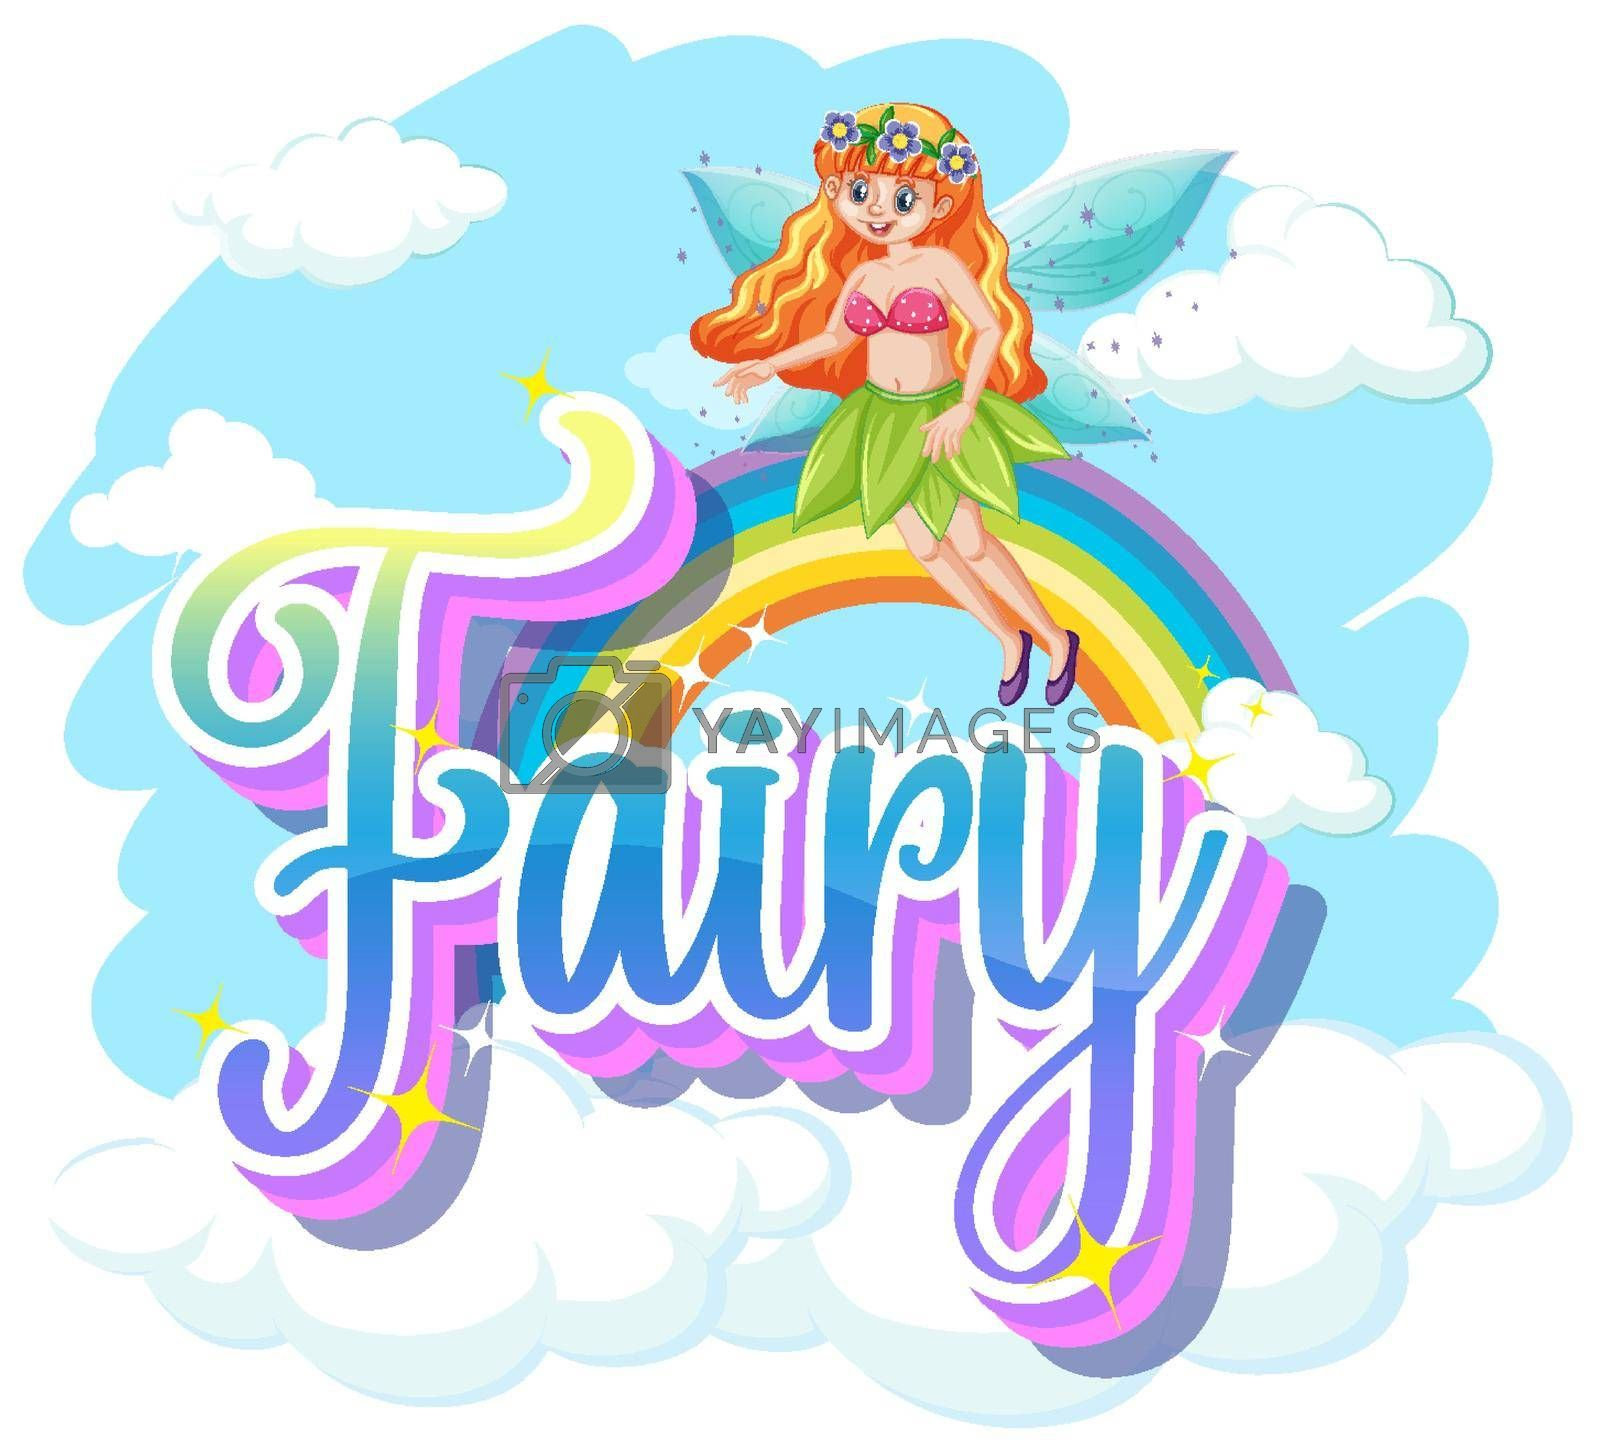 Fairy logos with little fairy on white background illustration